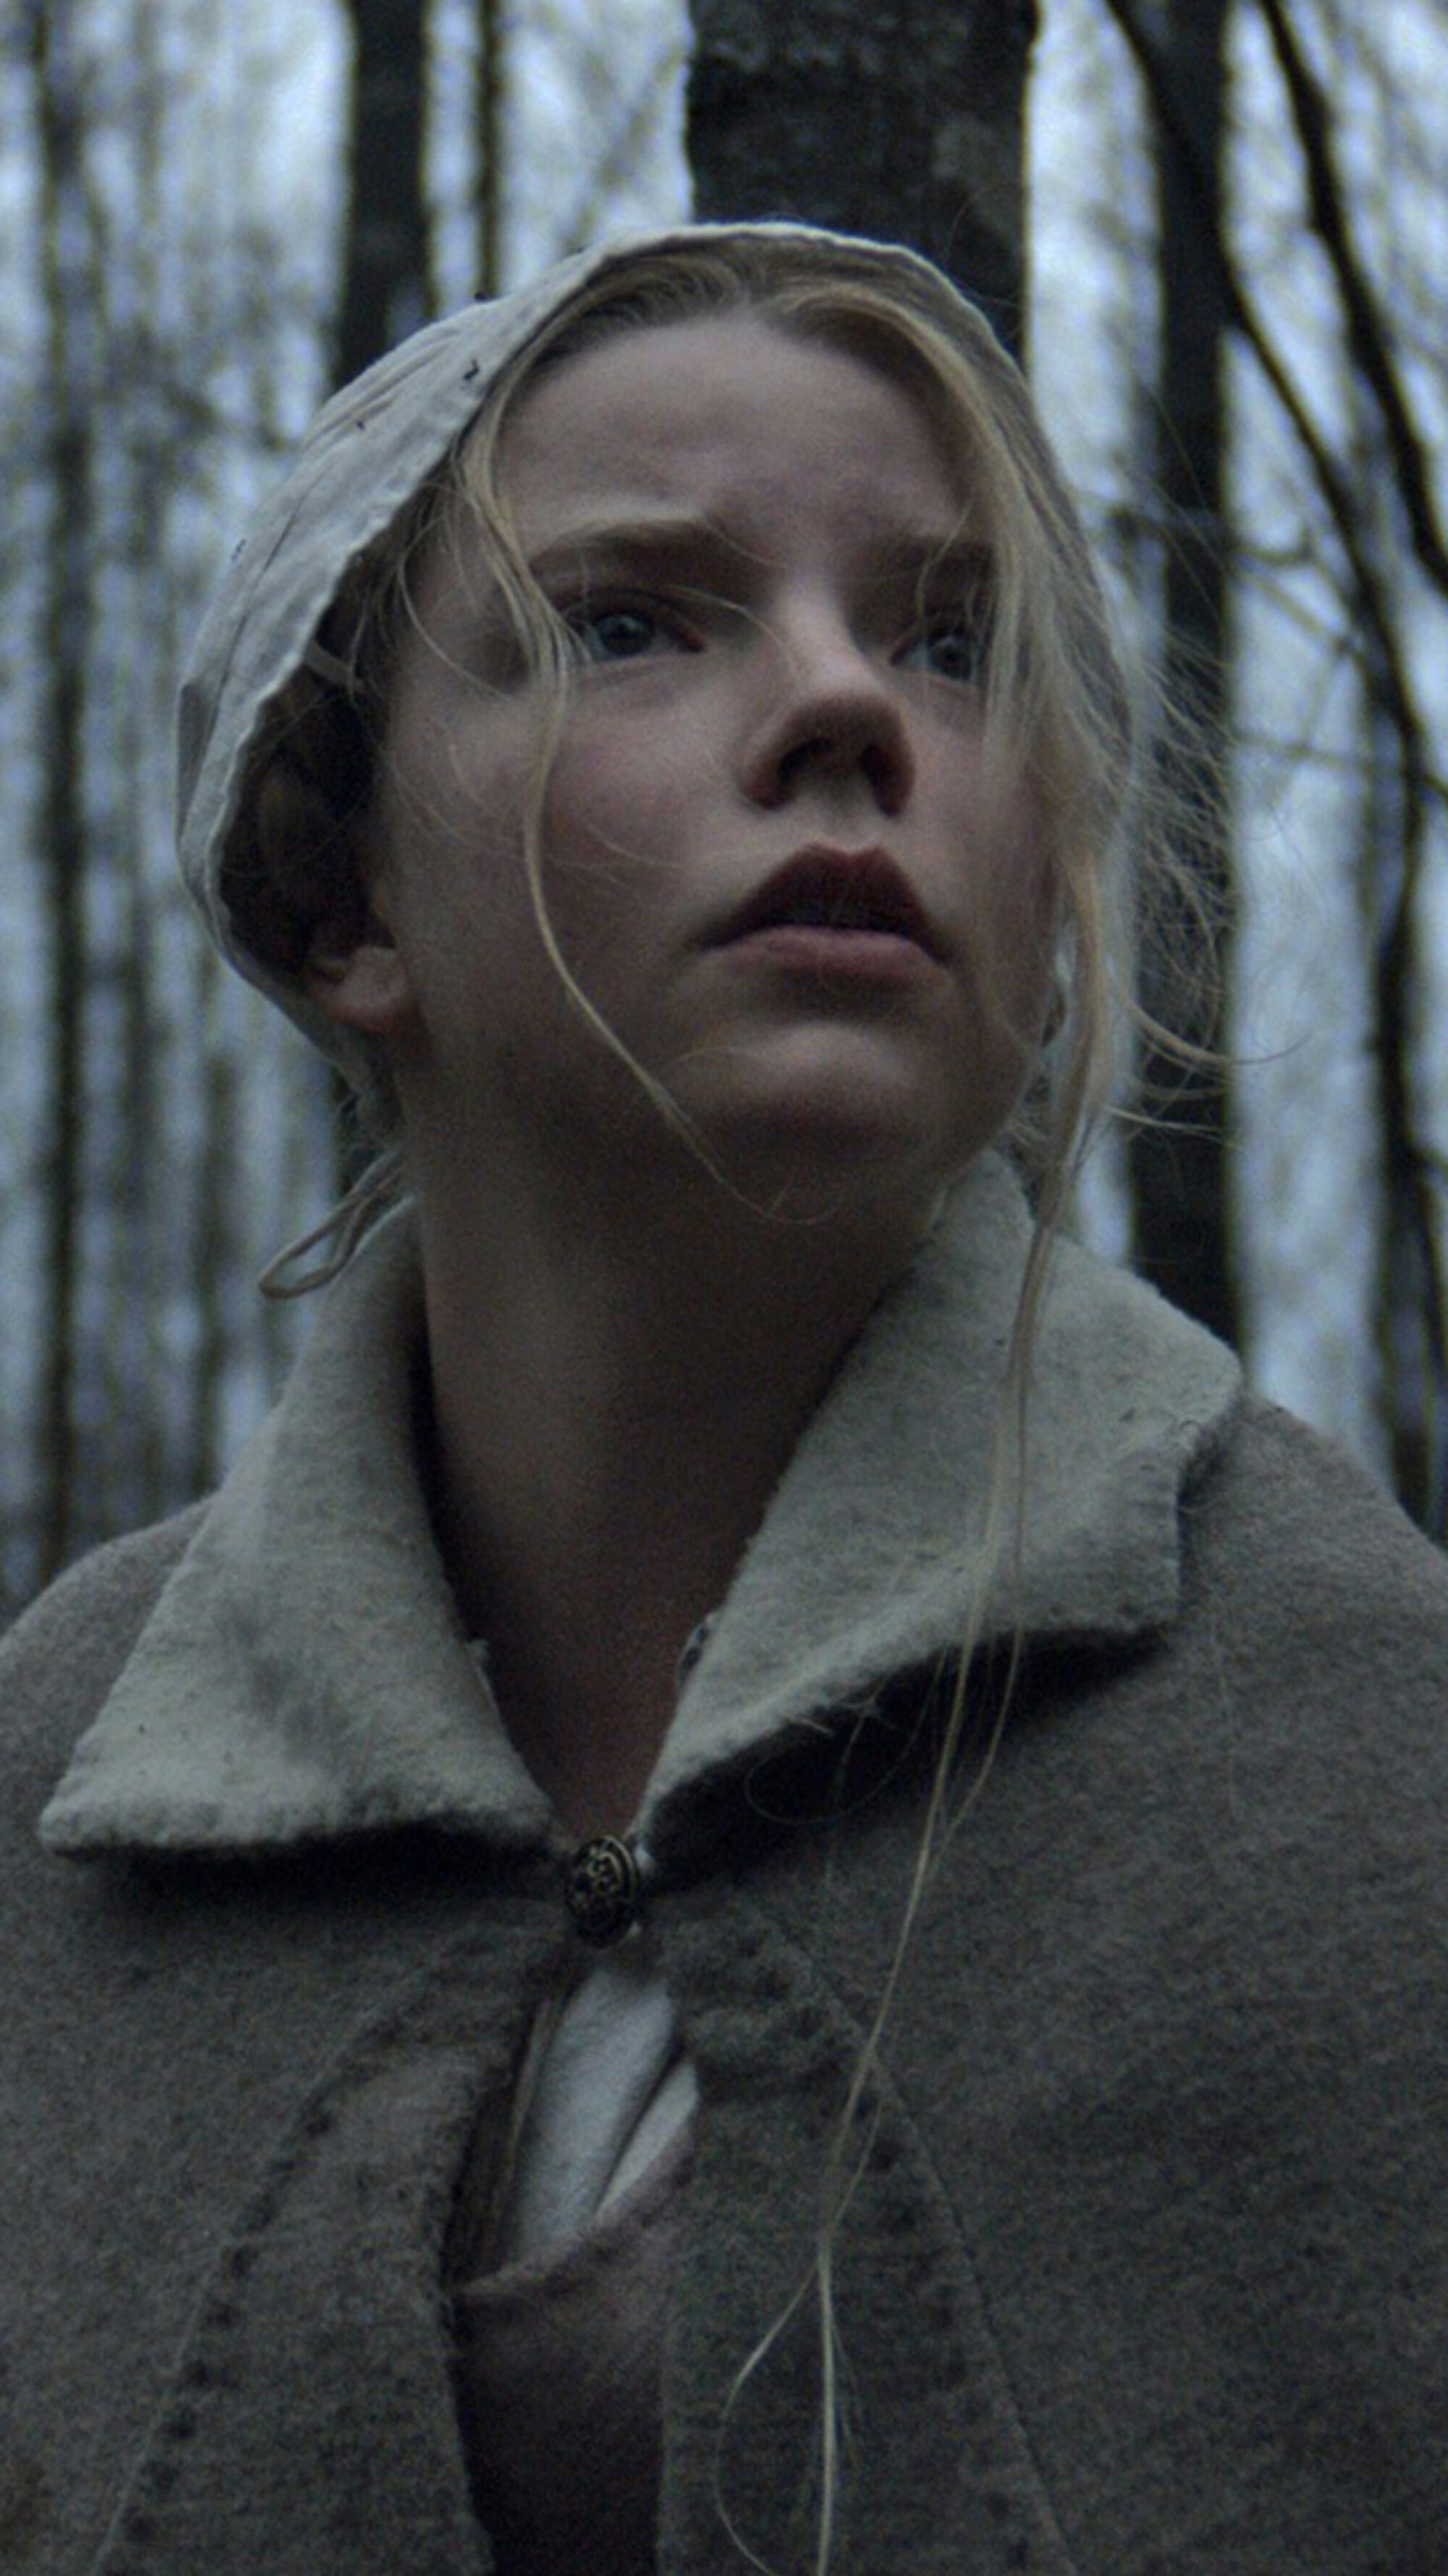 The Witch Thumbnail 16 9 170907 123355 916 Mobile